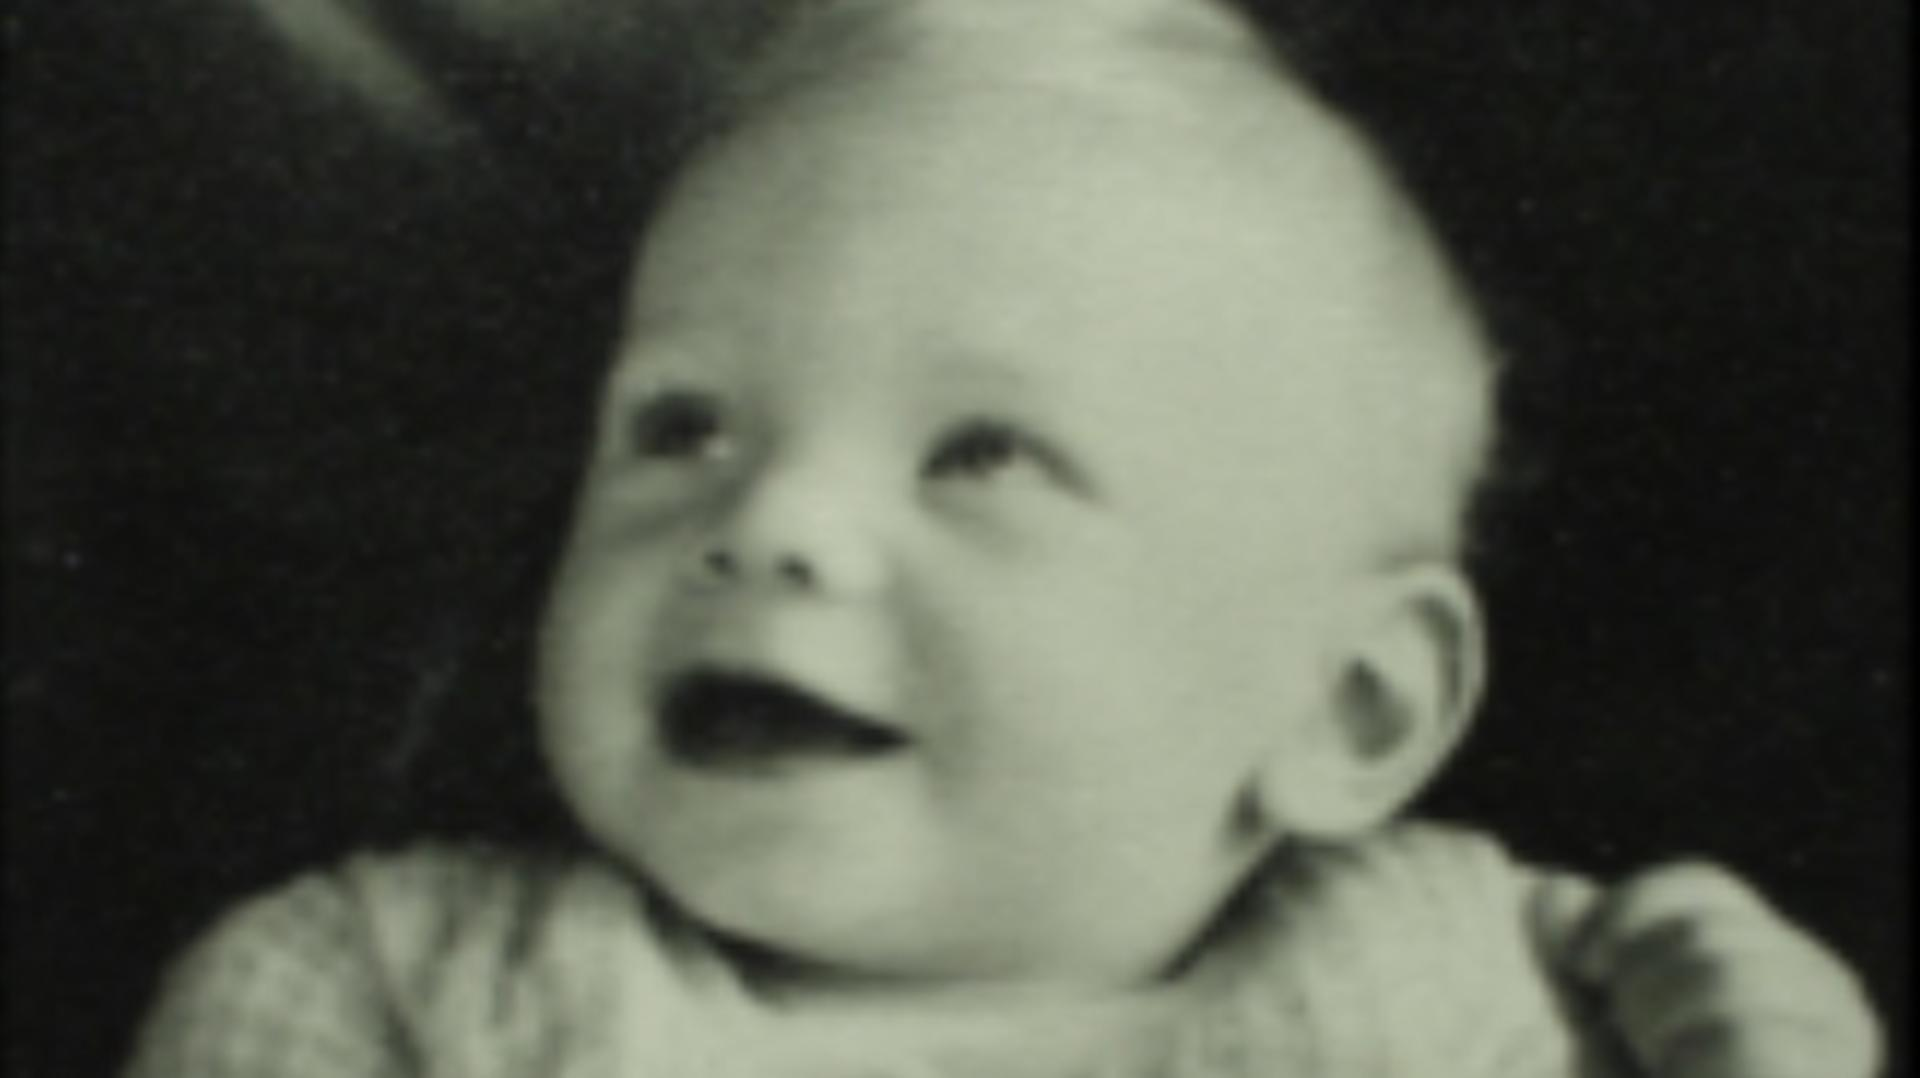 A smiling baby James Dyson